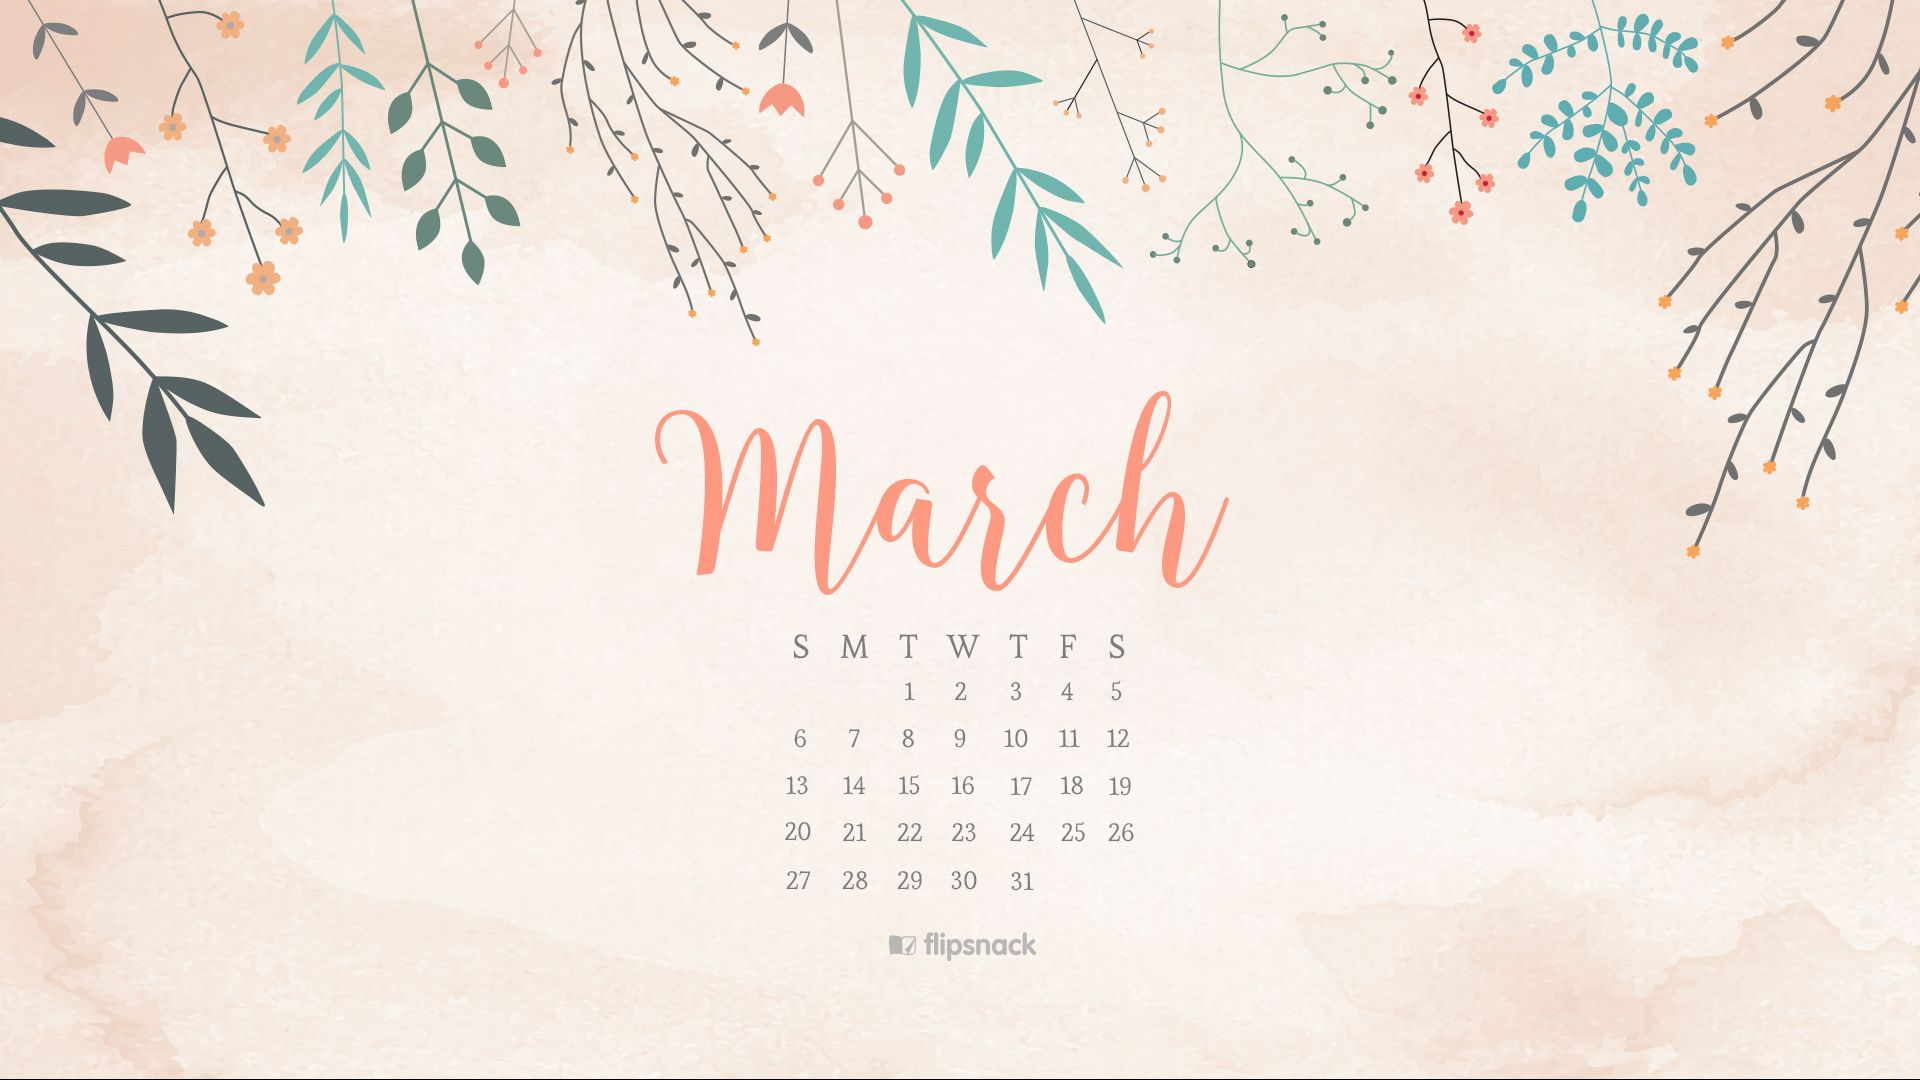 Calendar Wallpaper Originals : March free calendar wallpaper desktop background